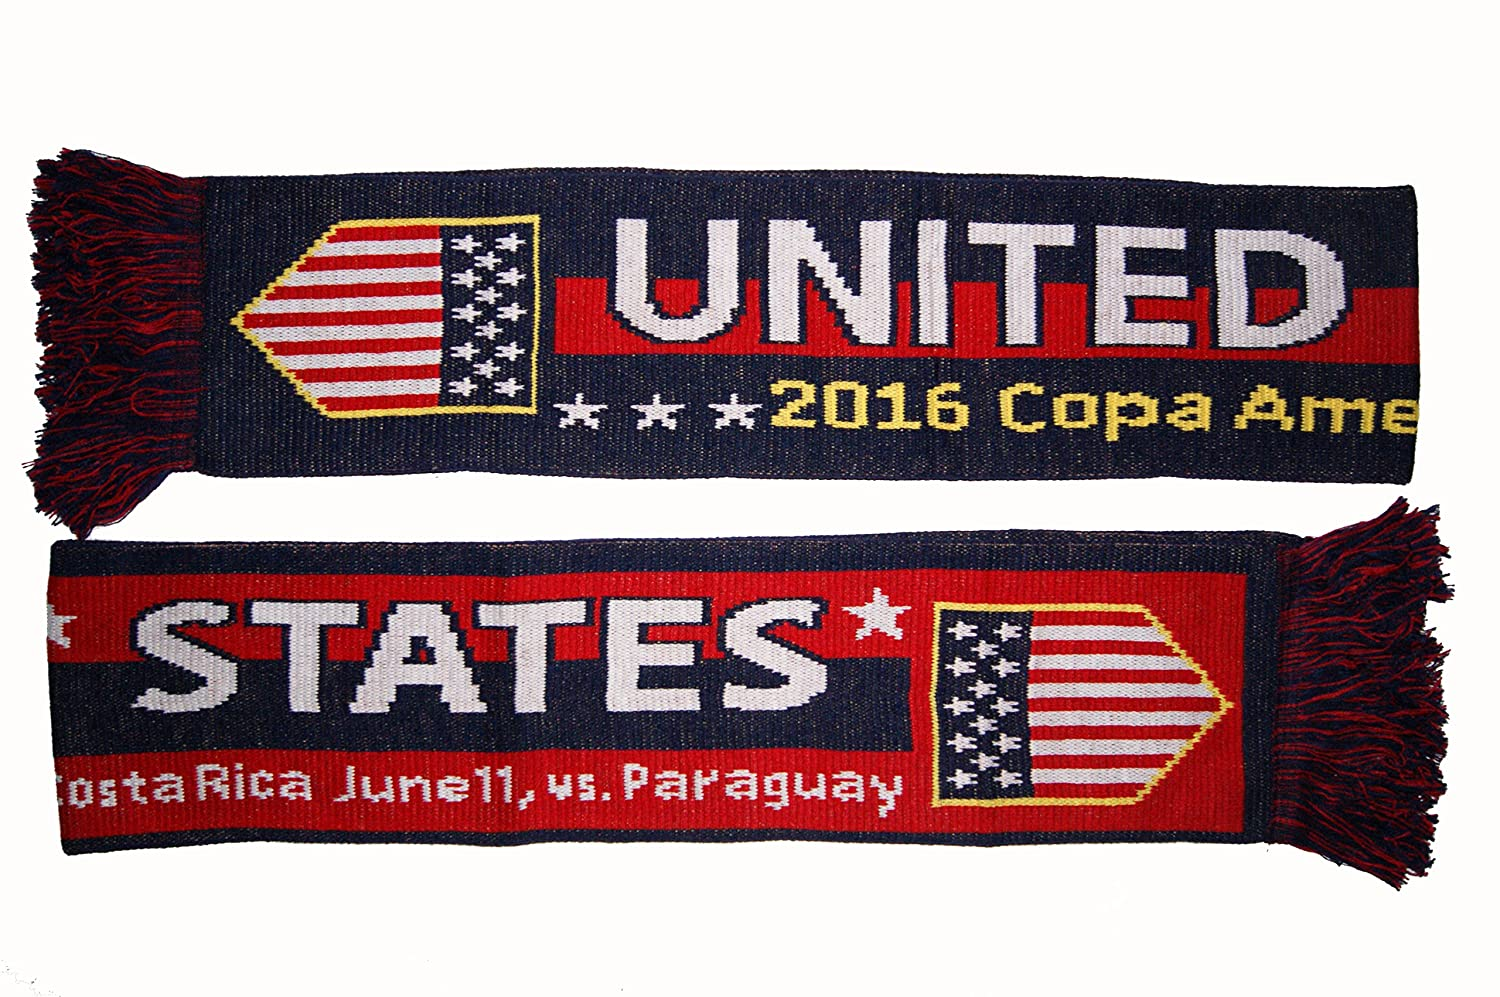 USA National Soccer Team Exclusive 2016 Copa America Edition B01DTR5TEM